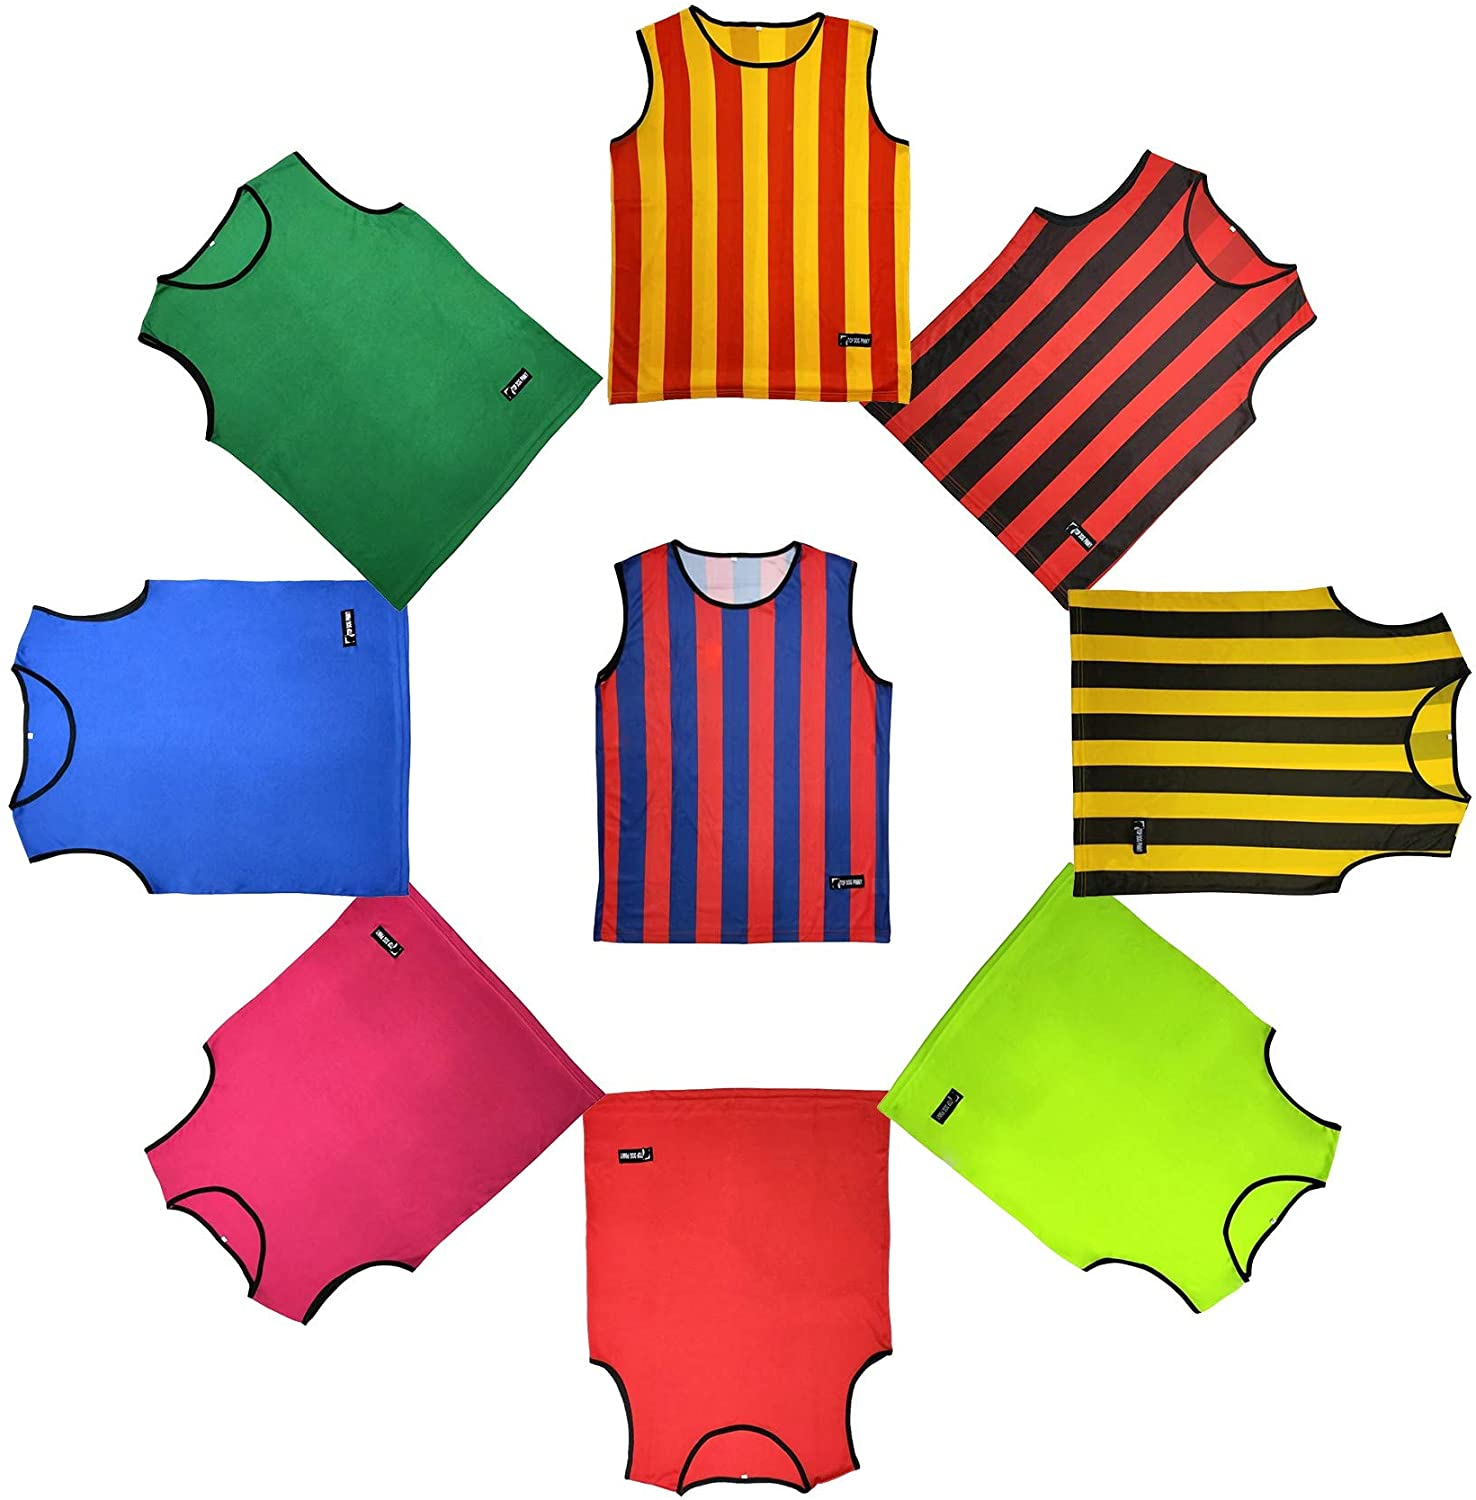 Top Dog Pinny Adult Scrimmage Pinnies for Sports Soccer Football Basketball Quick Dry 6 Pack XL